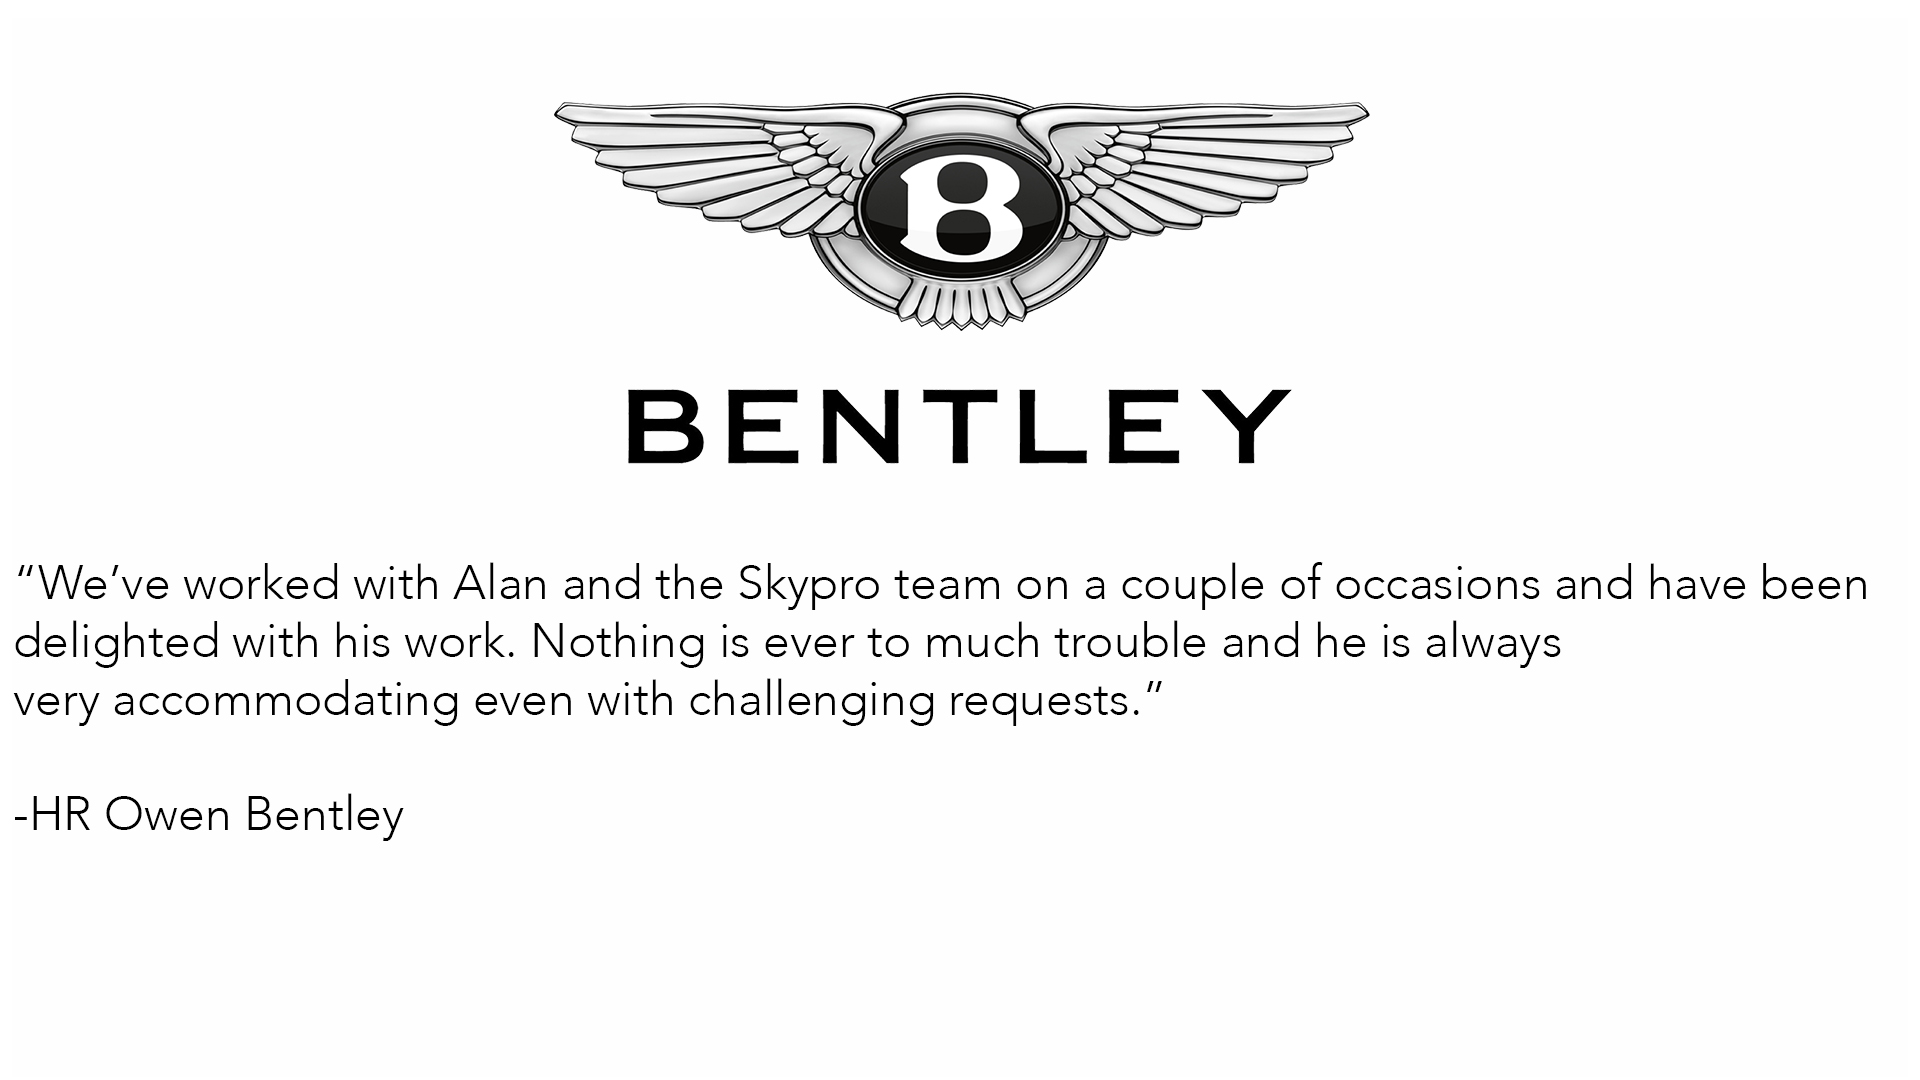 Bentley-logo-1920x1080 copy.jpg